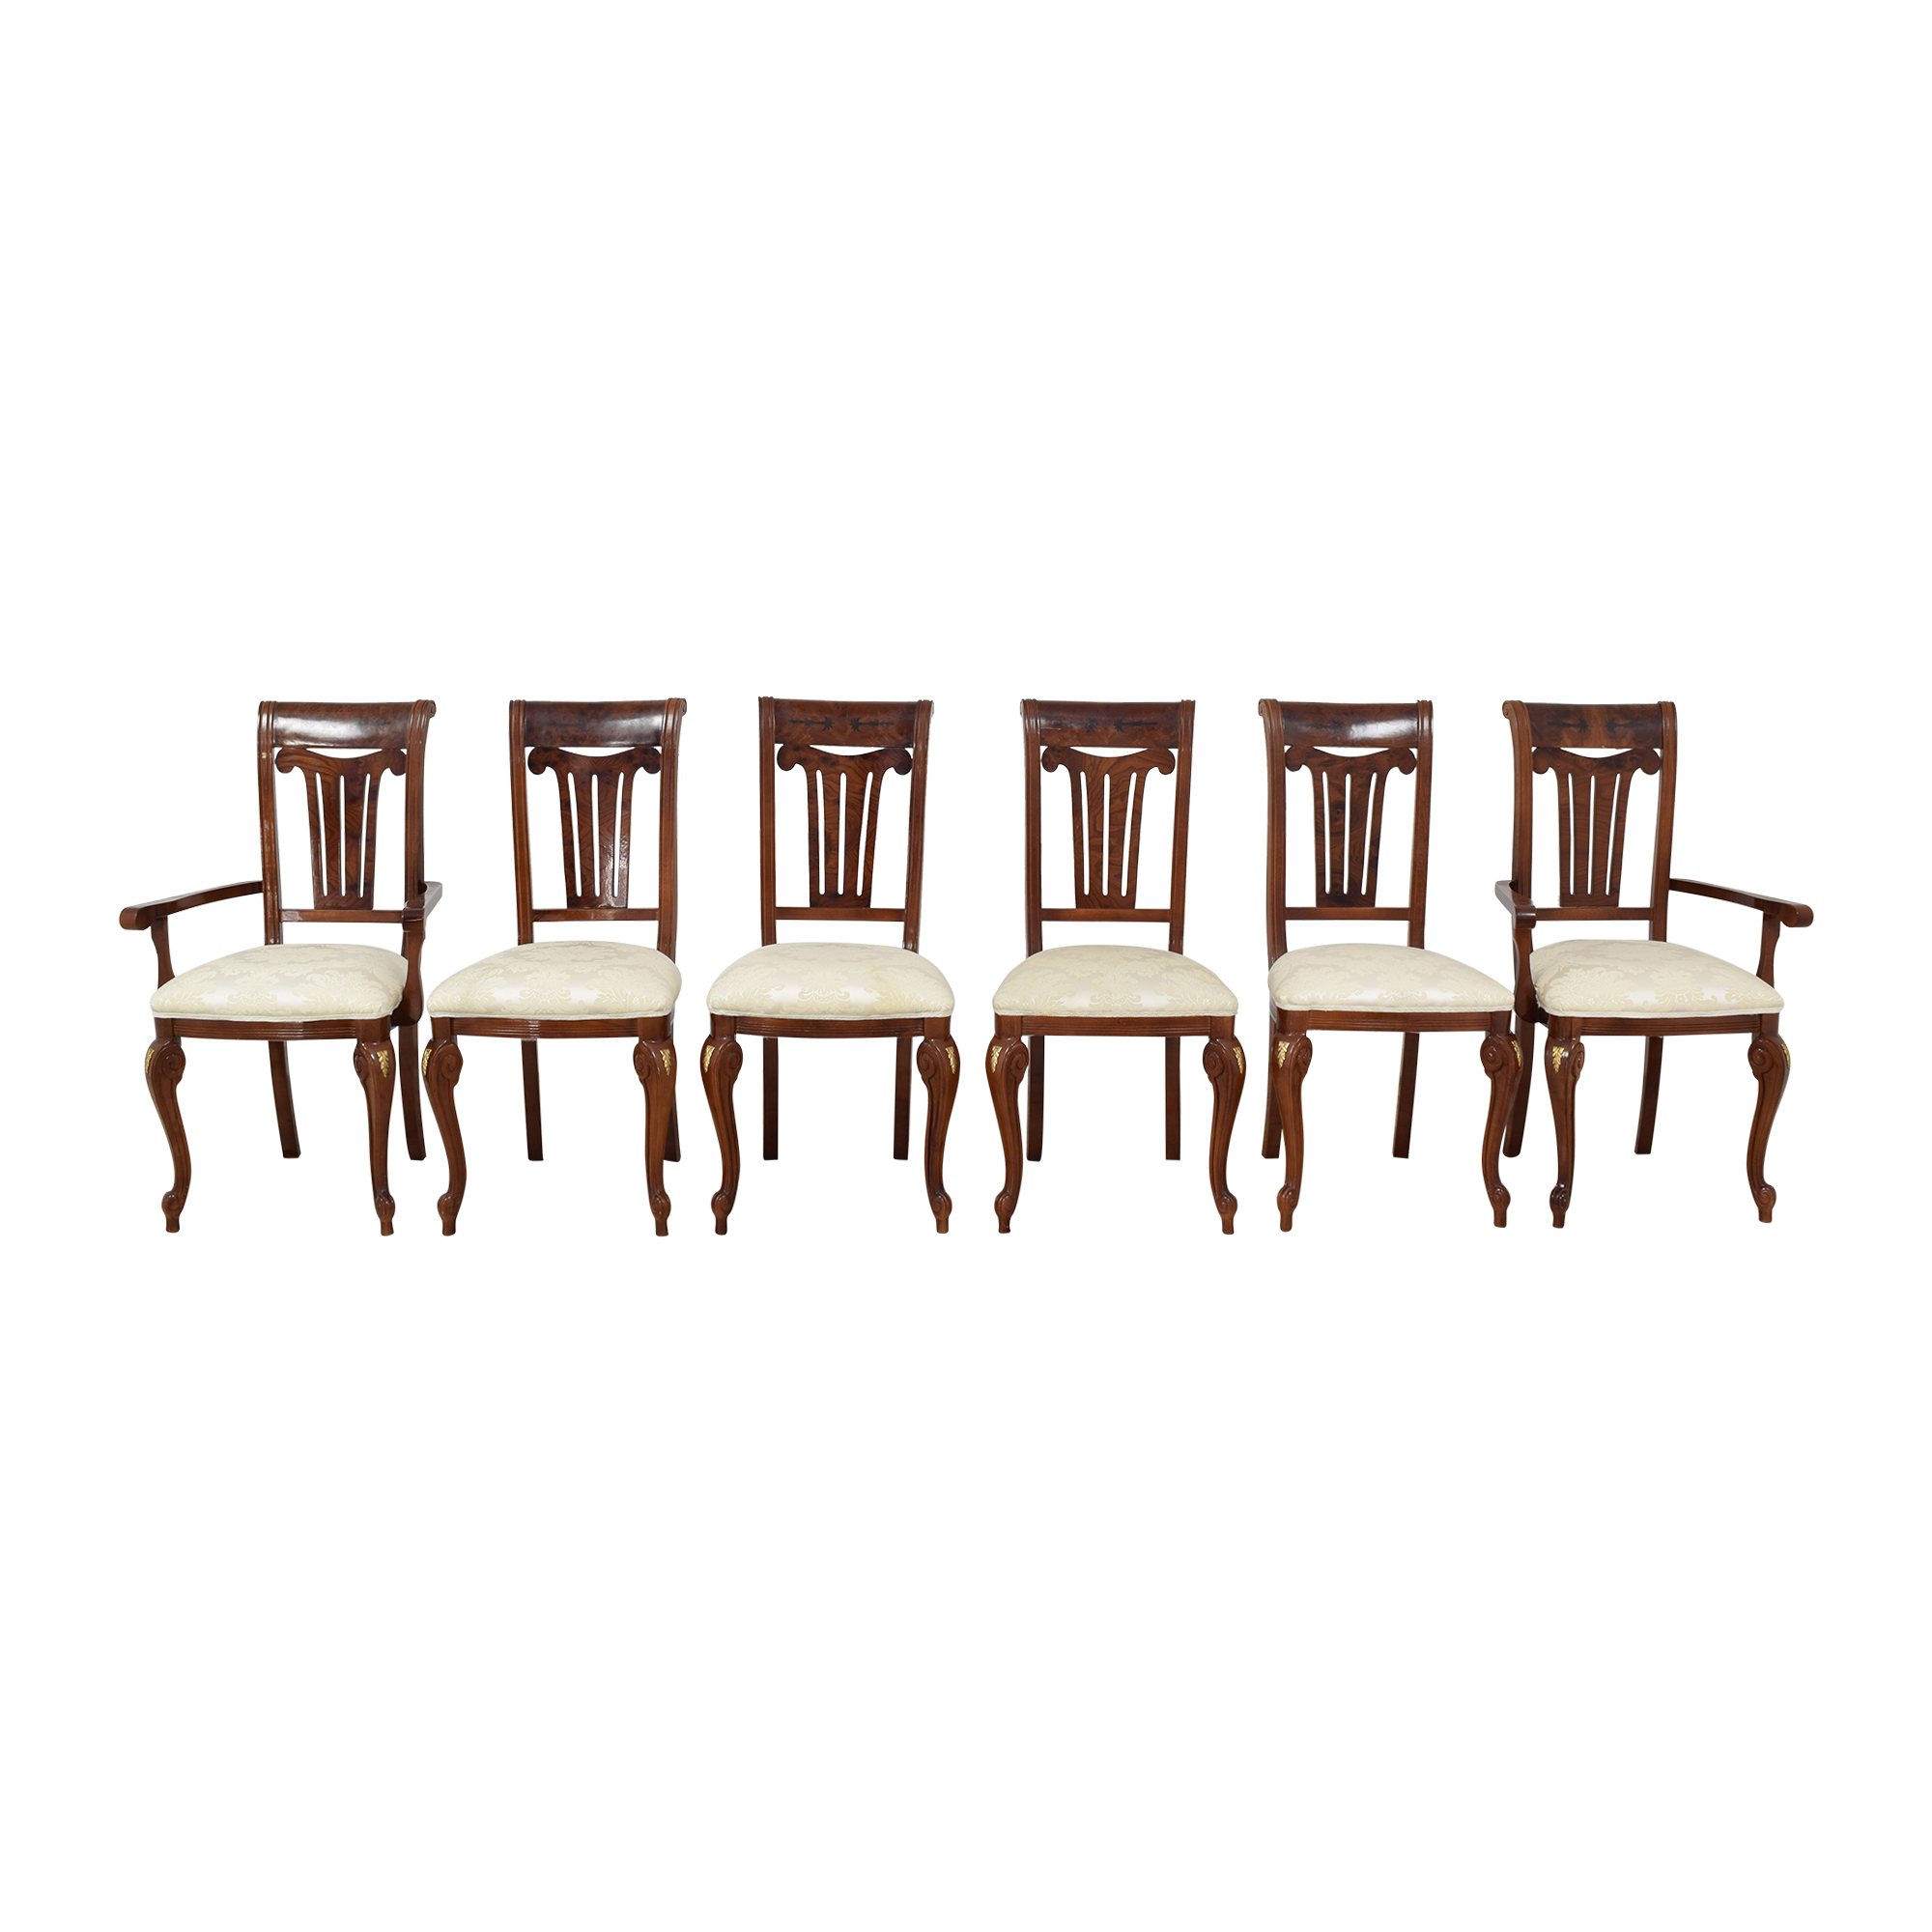 Roma Furniture Dining Chairs / Dining Chairs